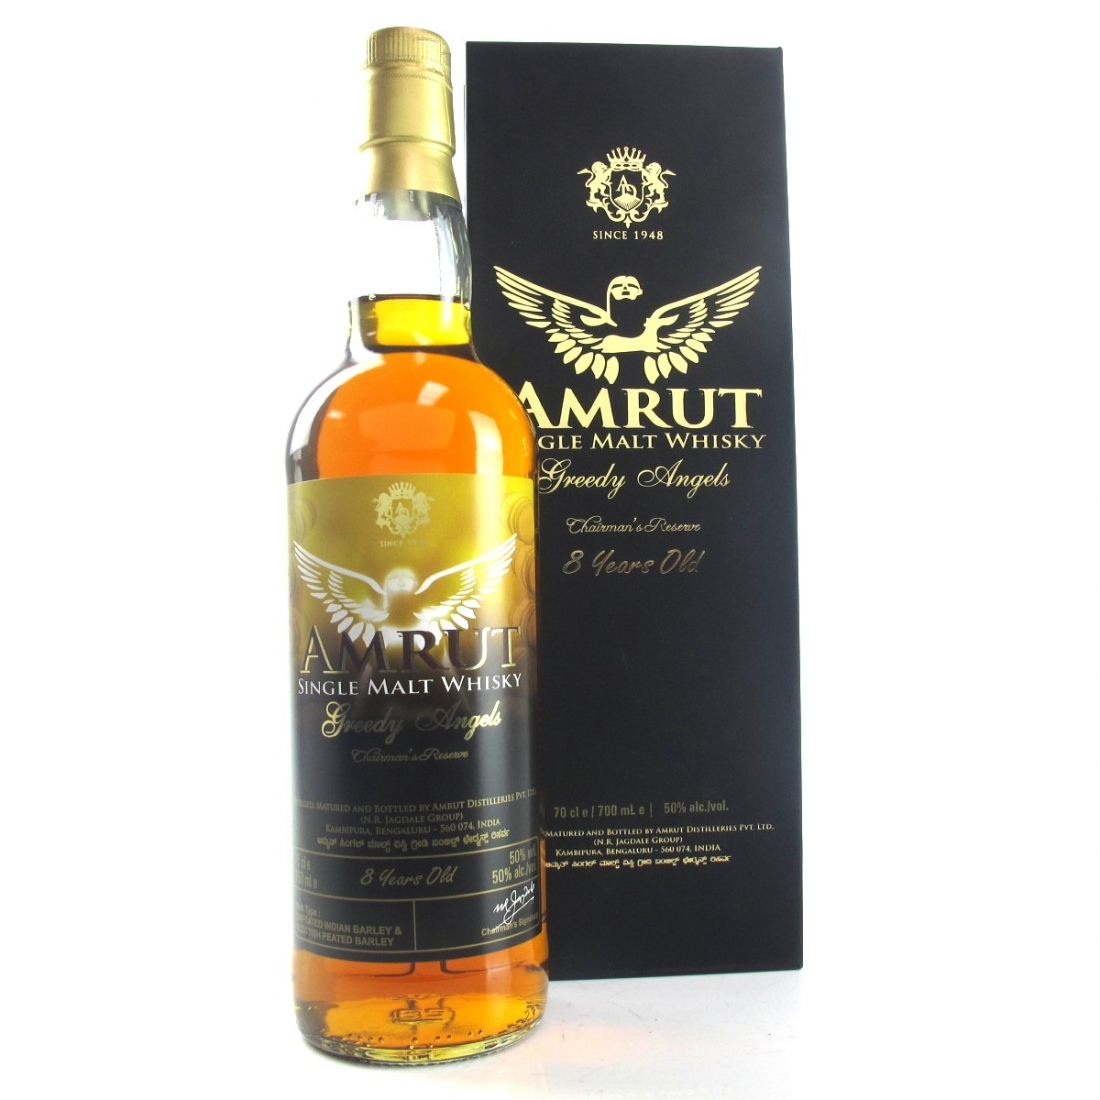 Amrut Greedy Angels 8 Year Old Chairman's Reserve